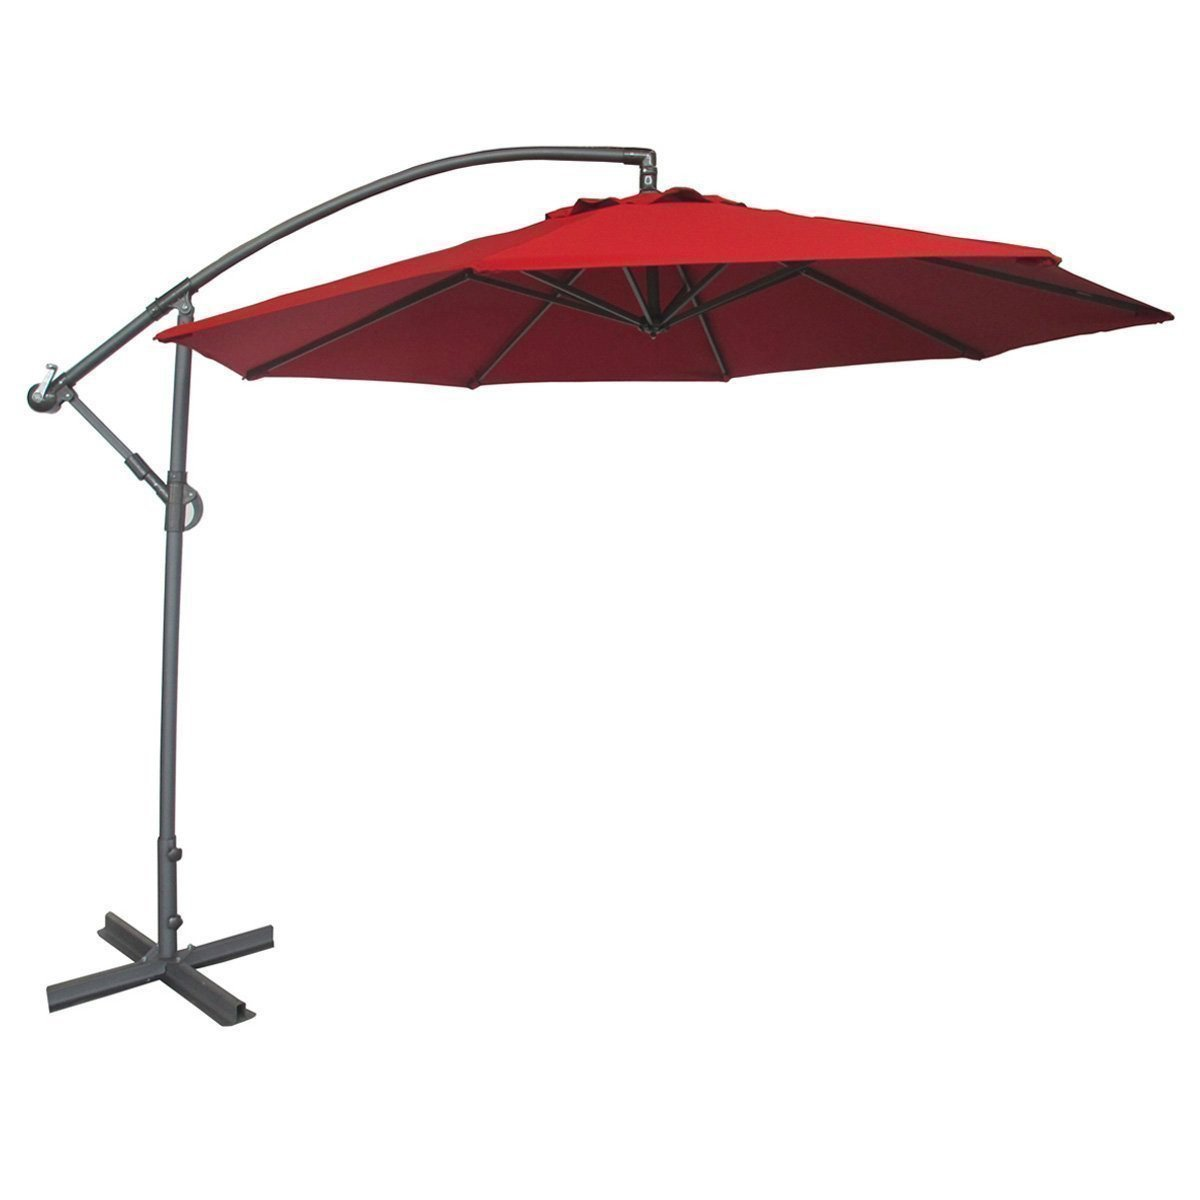 abba patio 10-ft offset cantilever hanging patio umbrella with base, easy  crank operation, 8 ribs, air vented top, red 10 Ft Umbrella Base